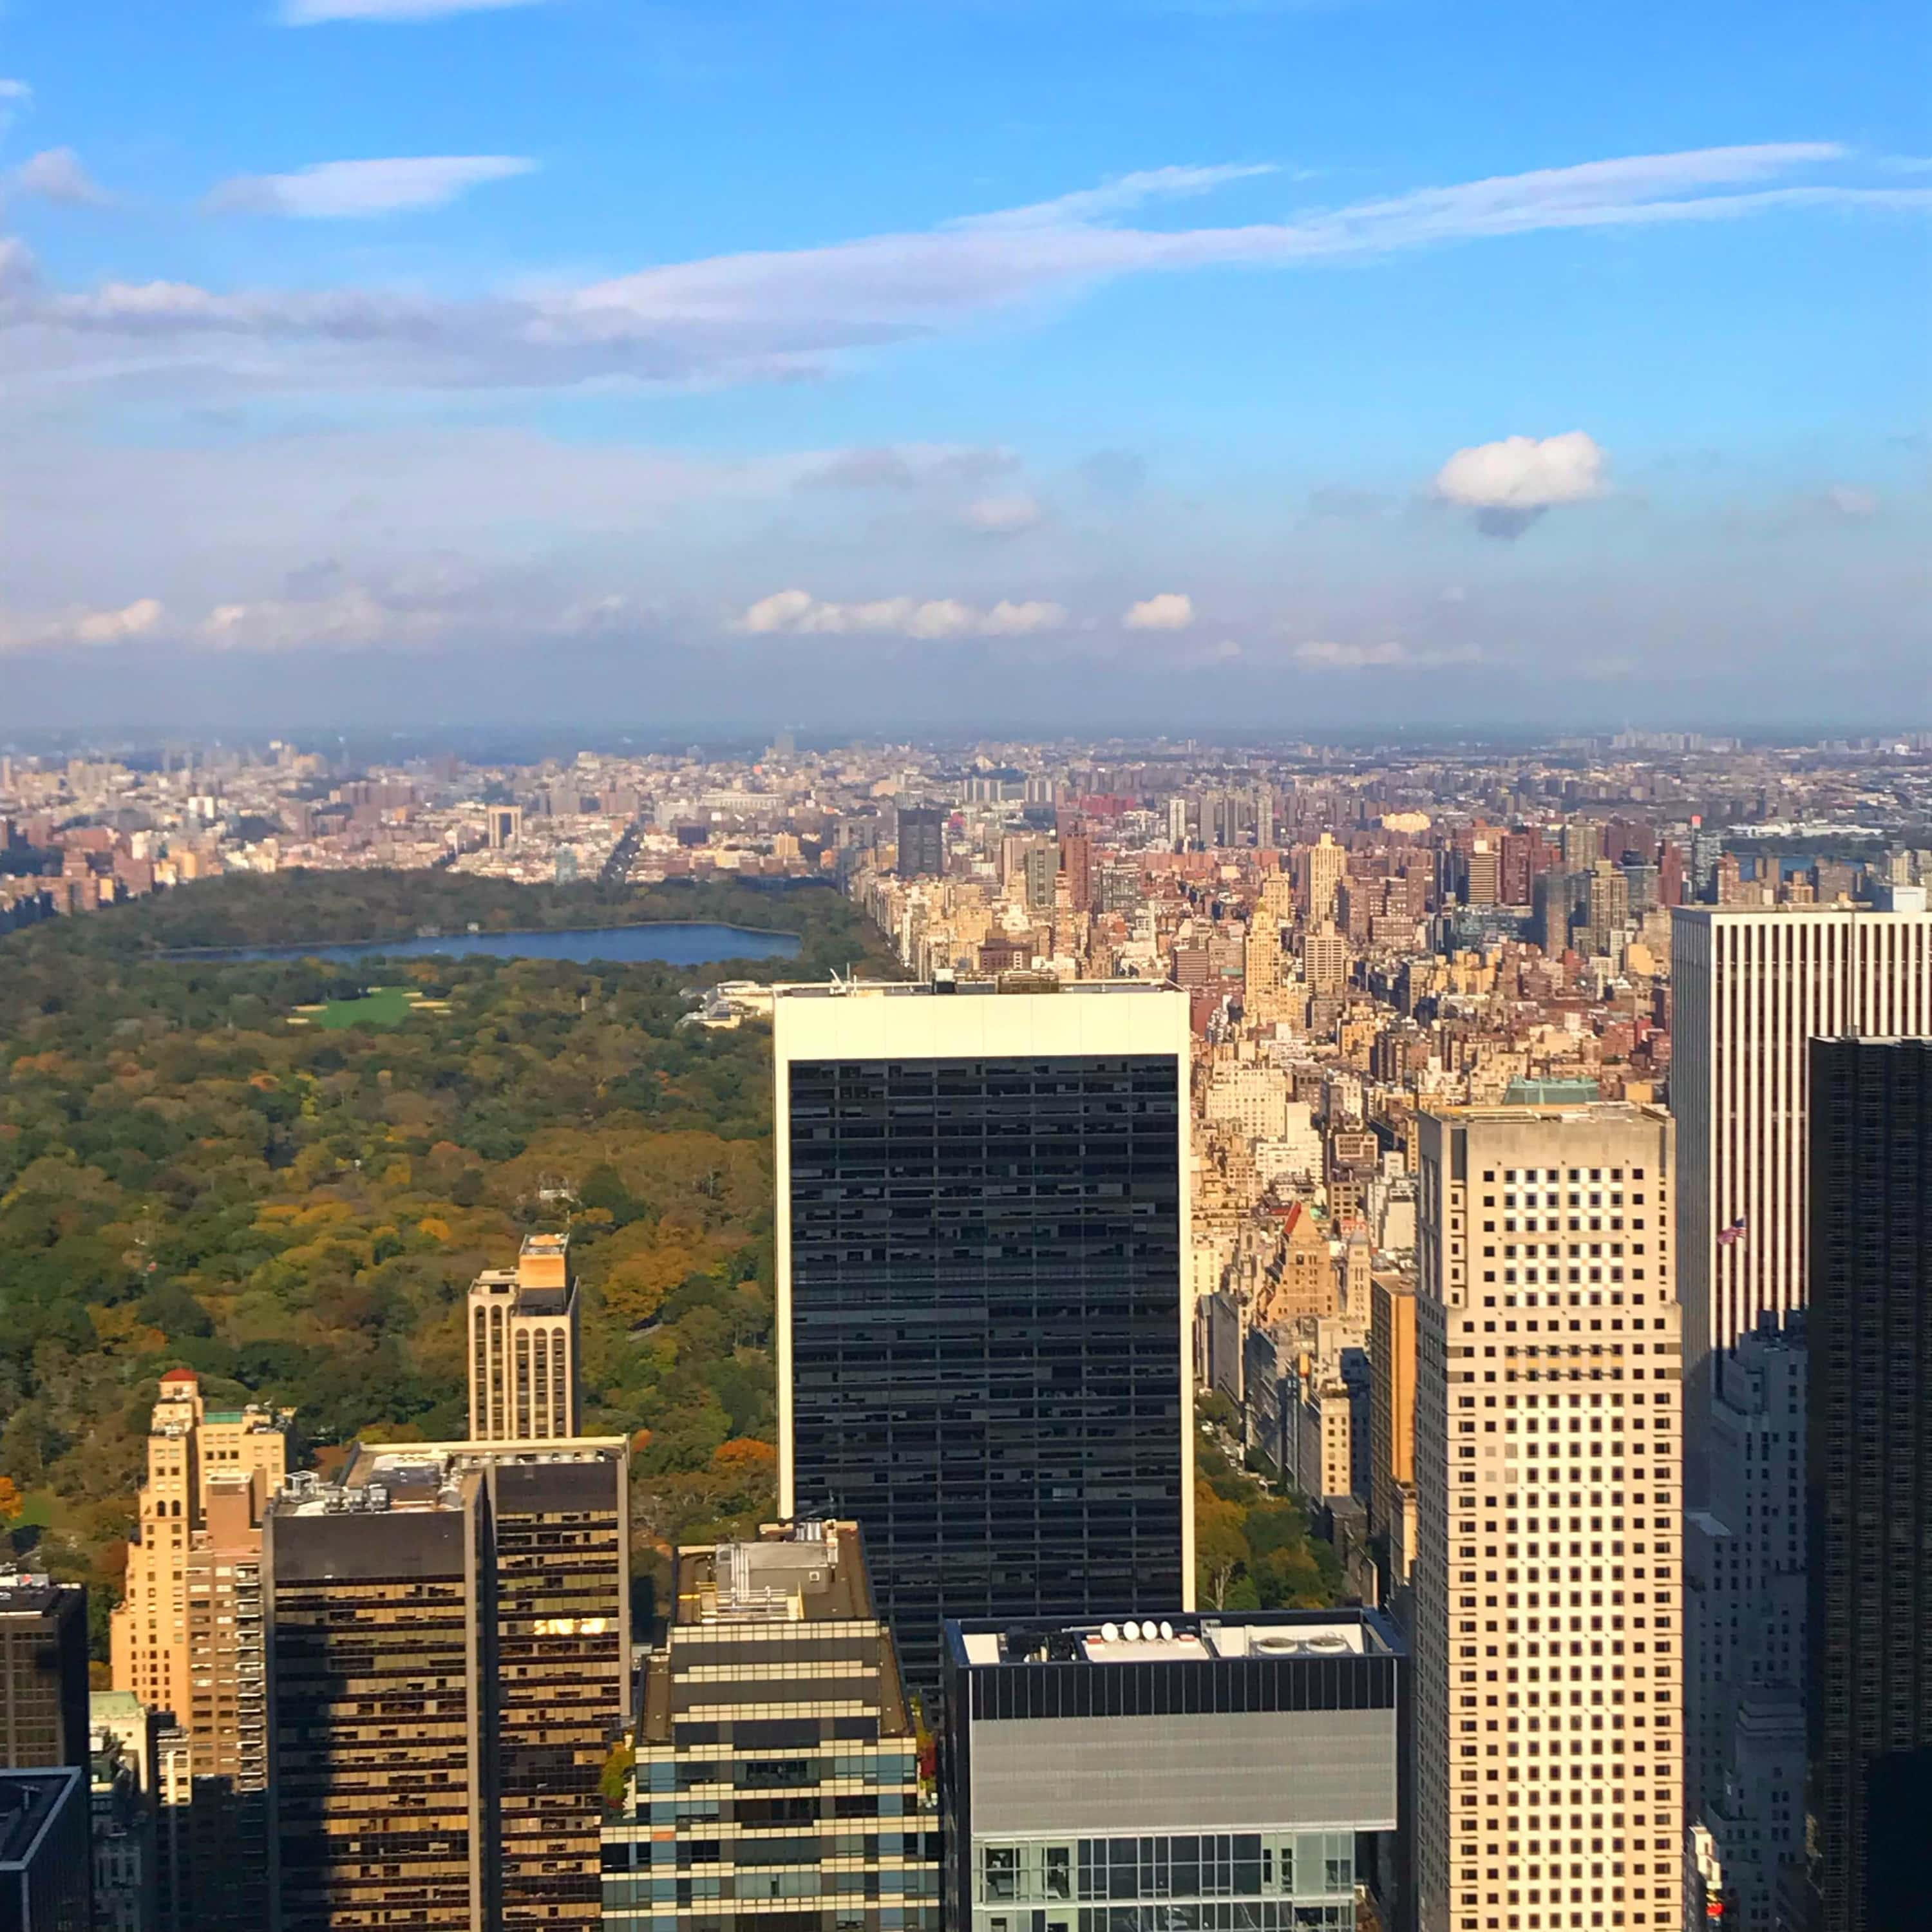 New York - Top of the Rock